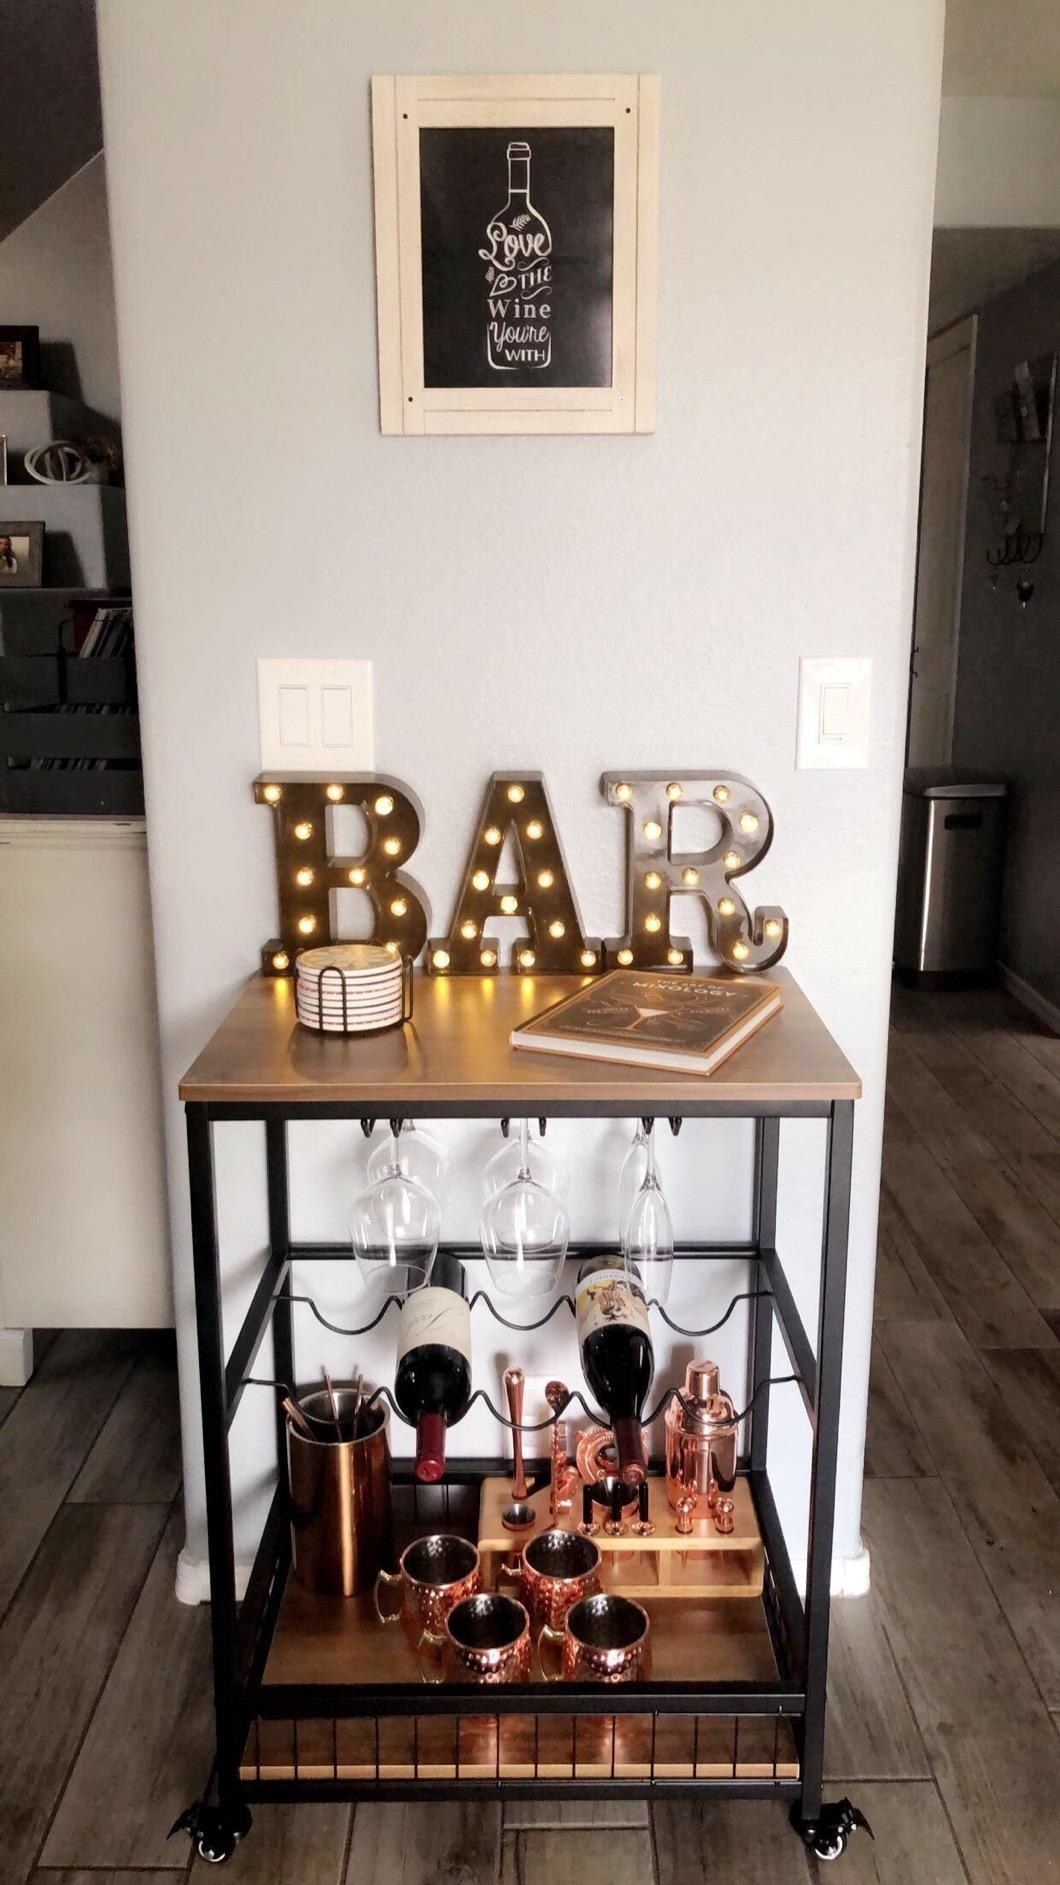 Reviewer photo of stocked bar cart in home